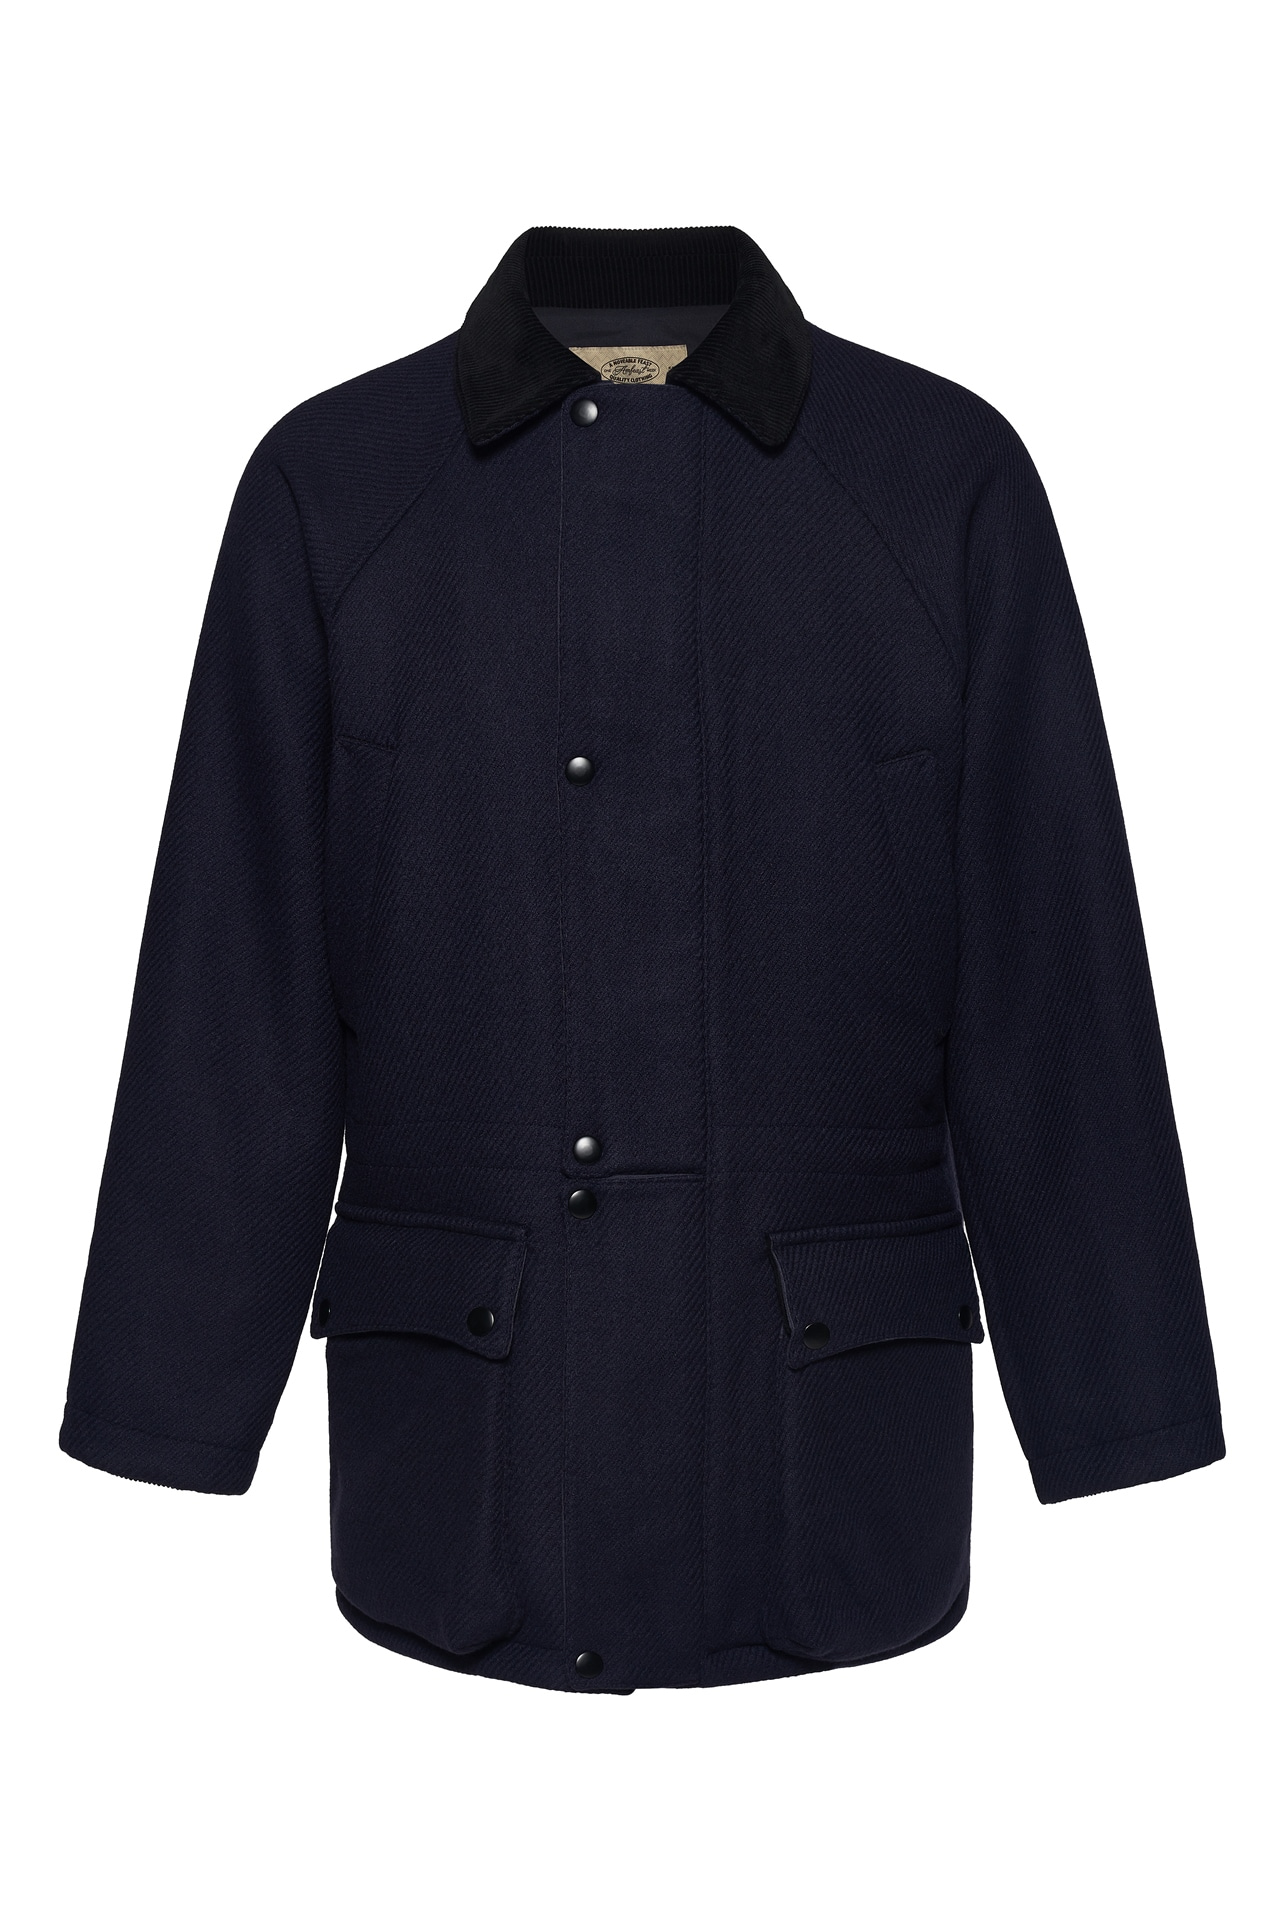 NAVY SOLID SIGNATURE CITY HALF COATAMFEAST(암피스트)